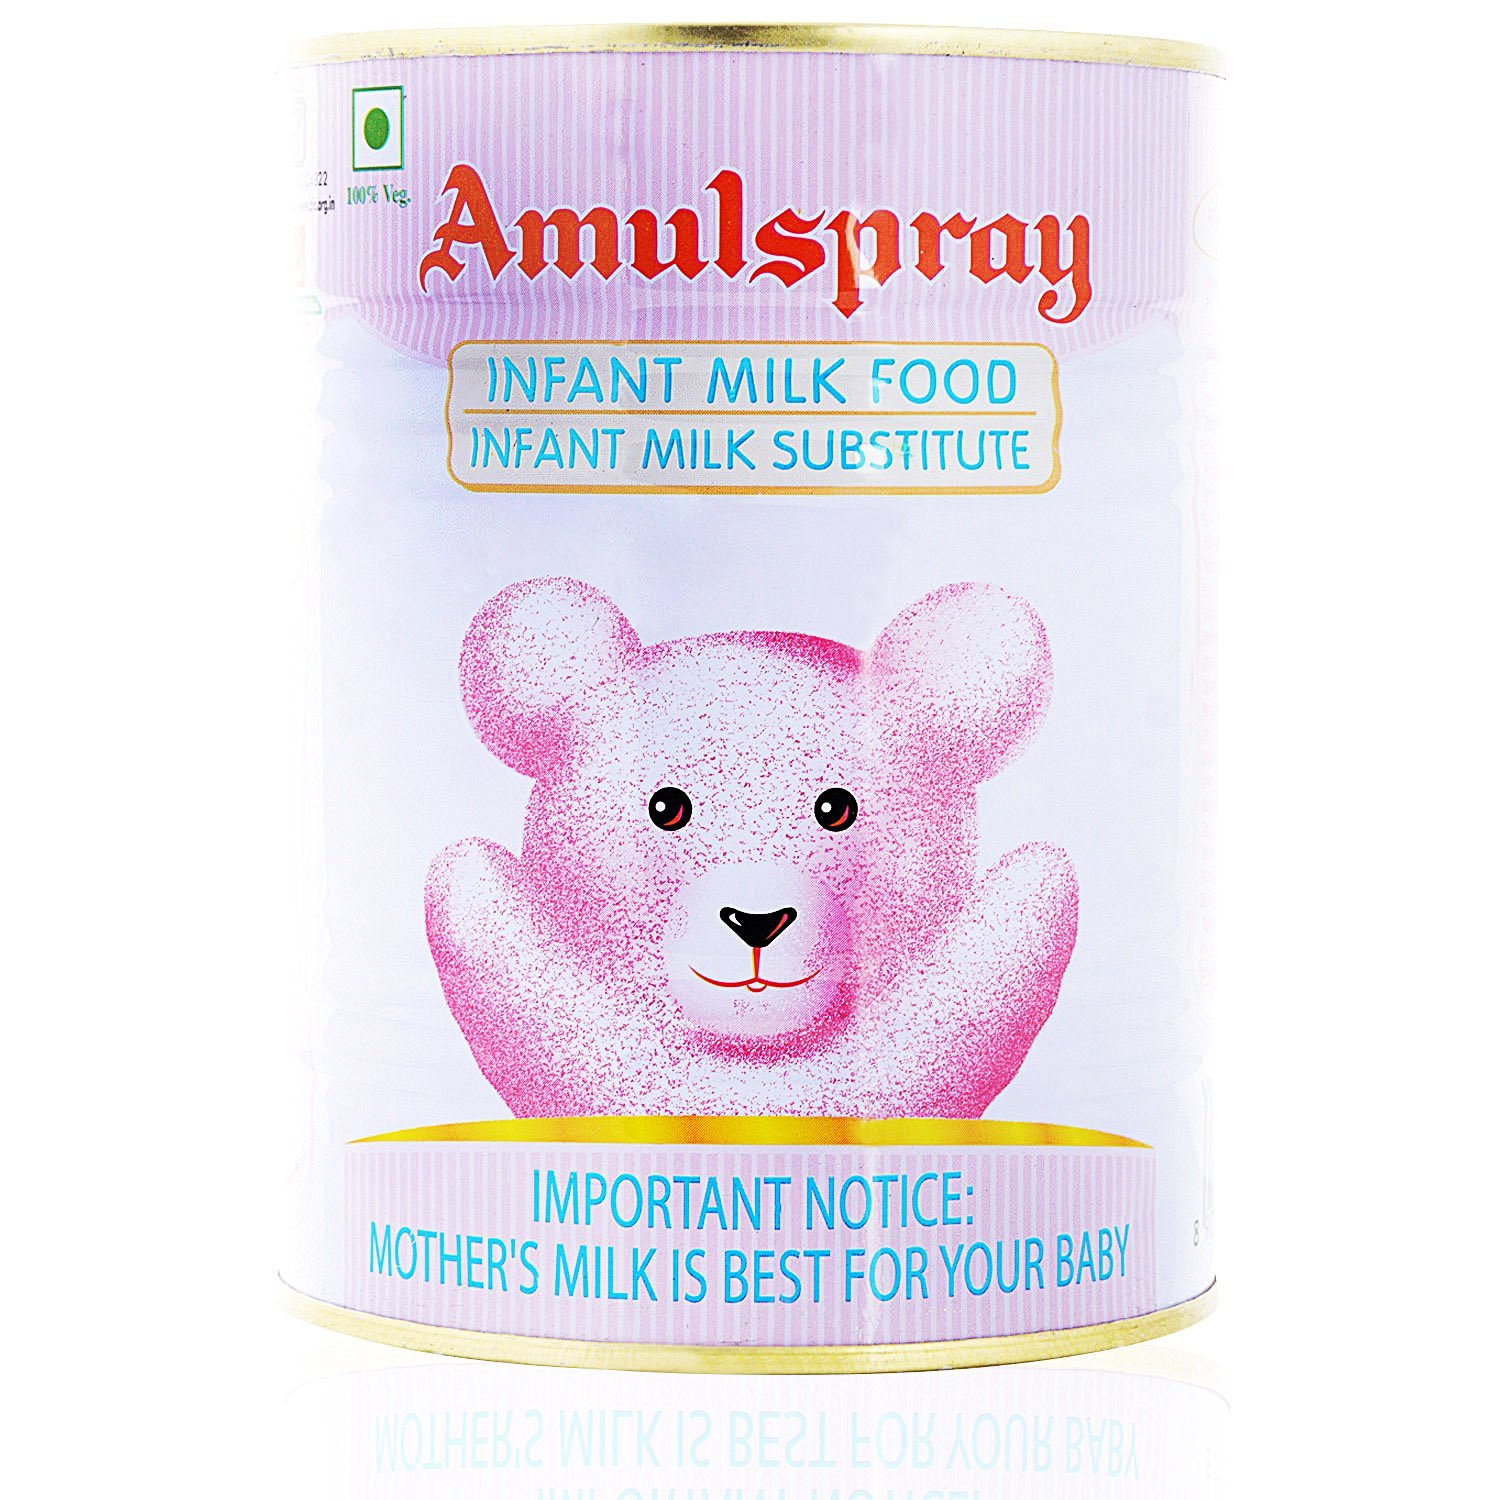 Amulspray Infant Milk Food Image